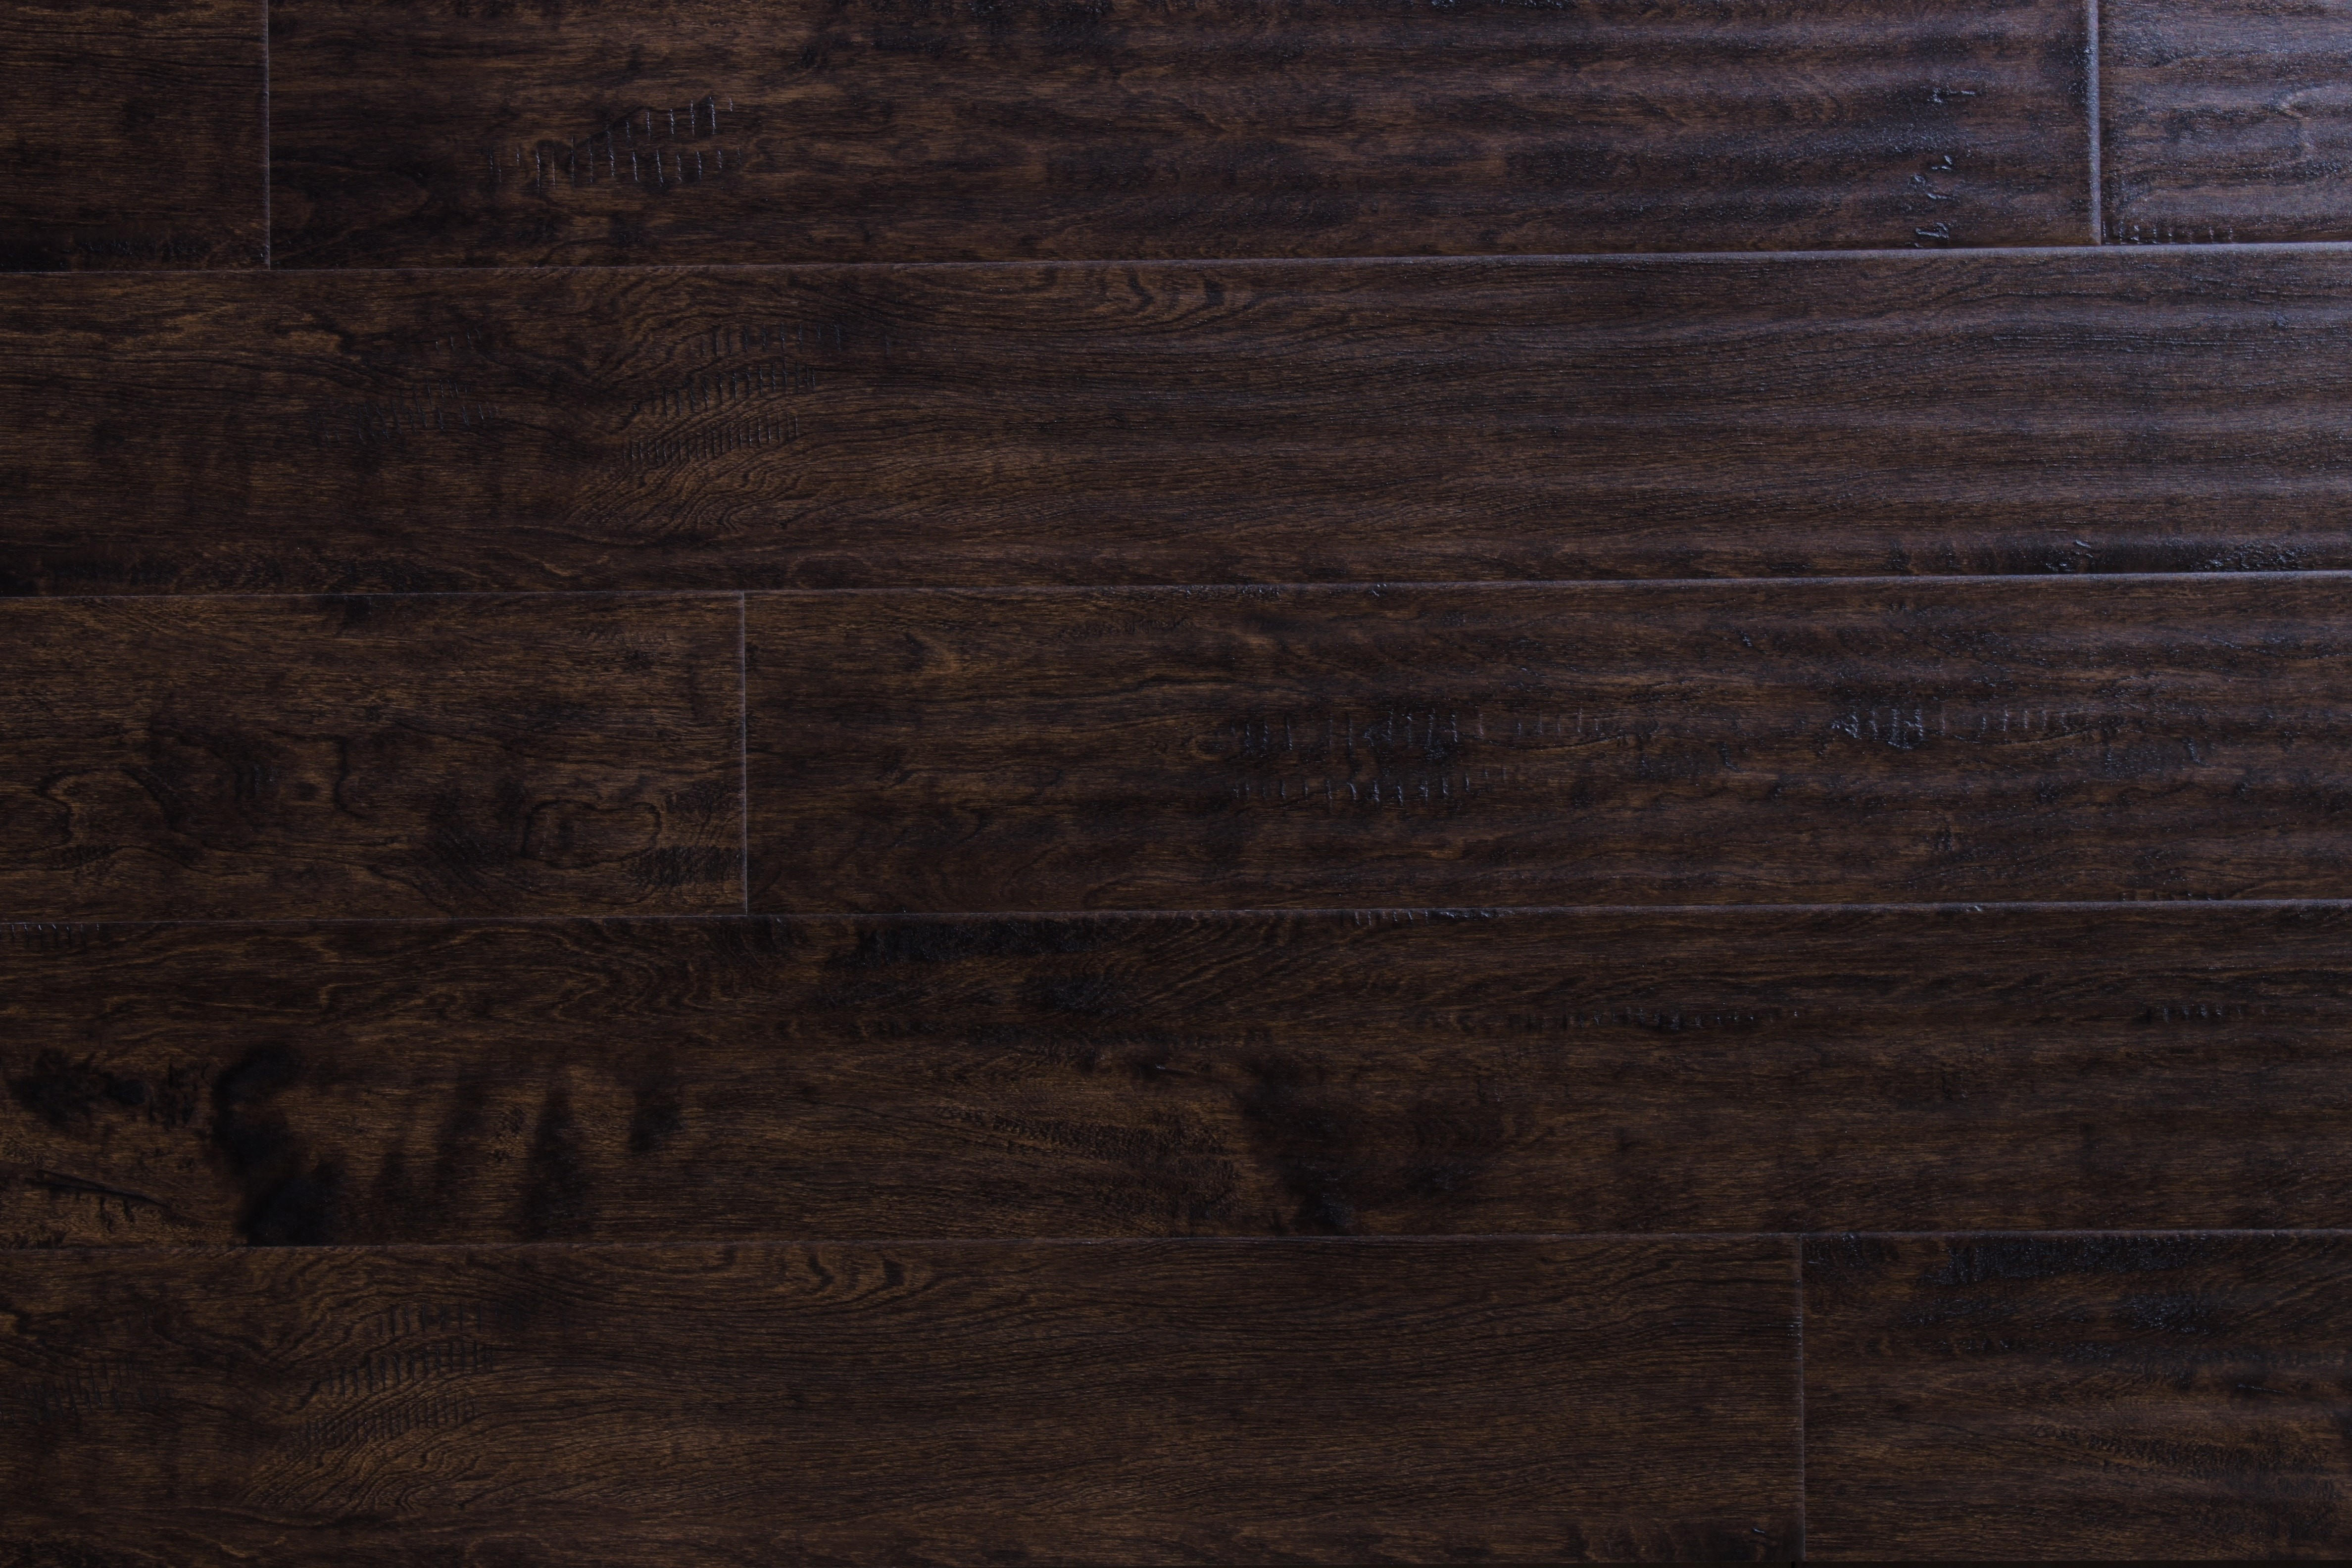 light colored engineered hardwood flooring of wood flooring free samples available at builddirecta within tailor multi gb 5874277bb8d3c